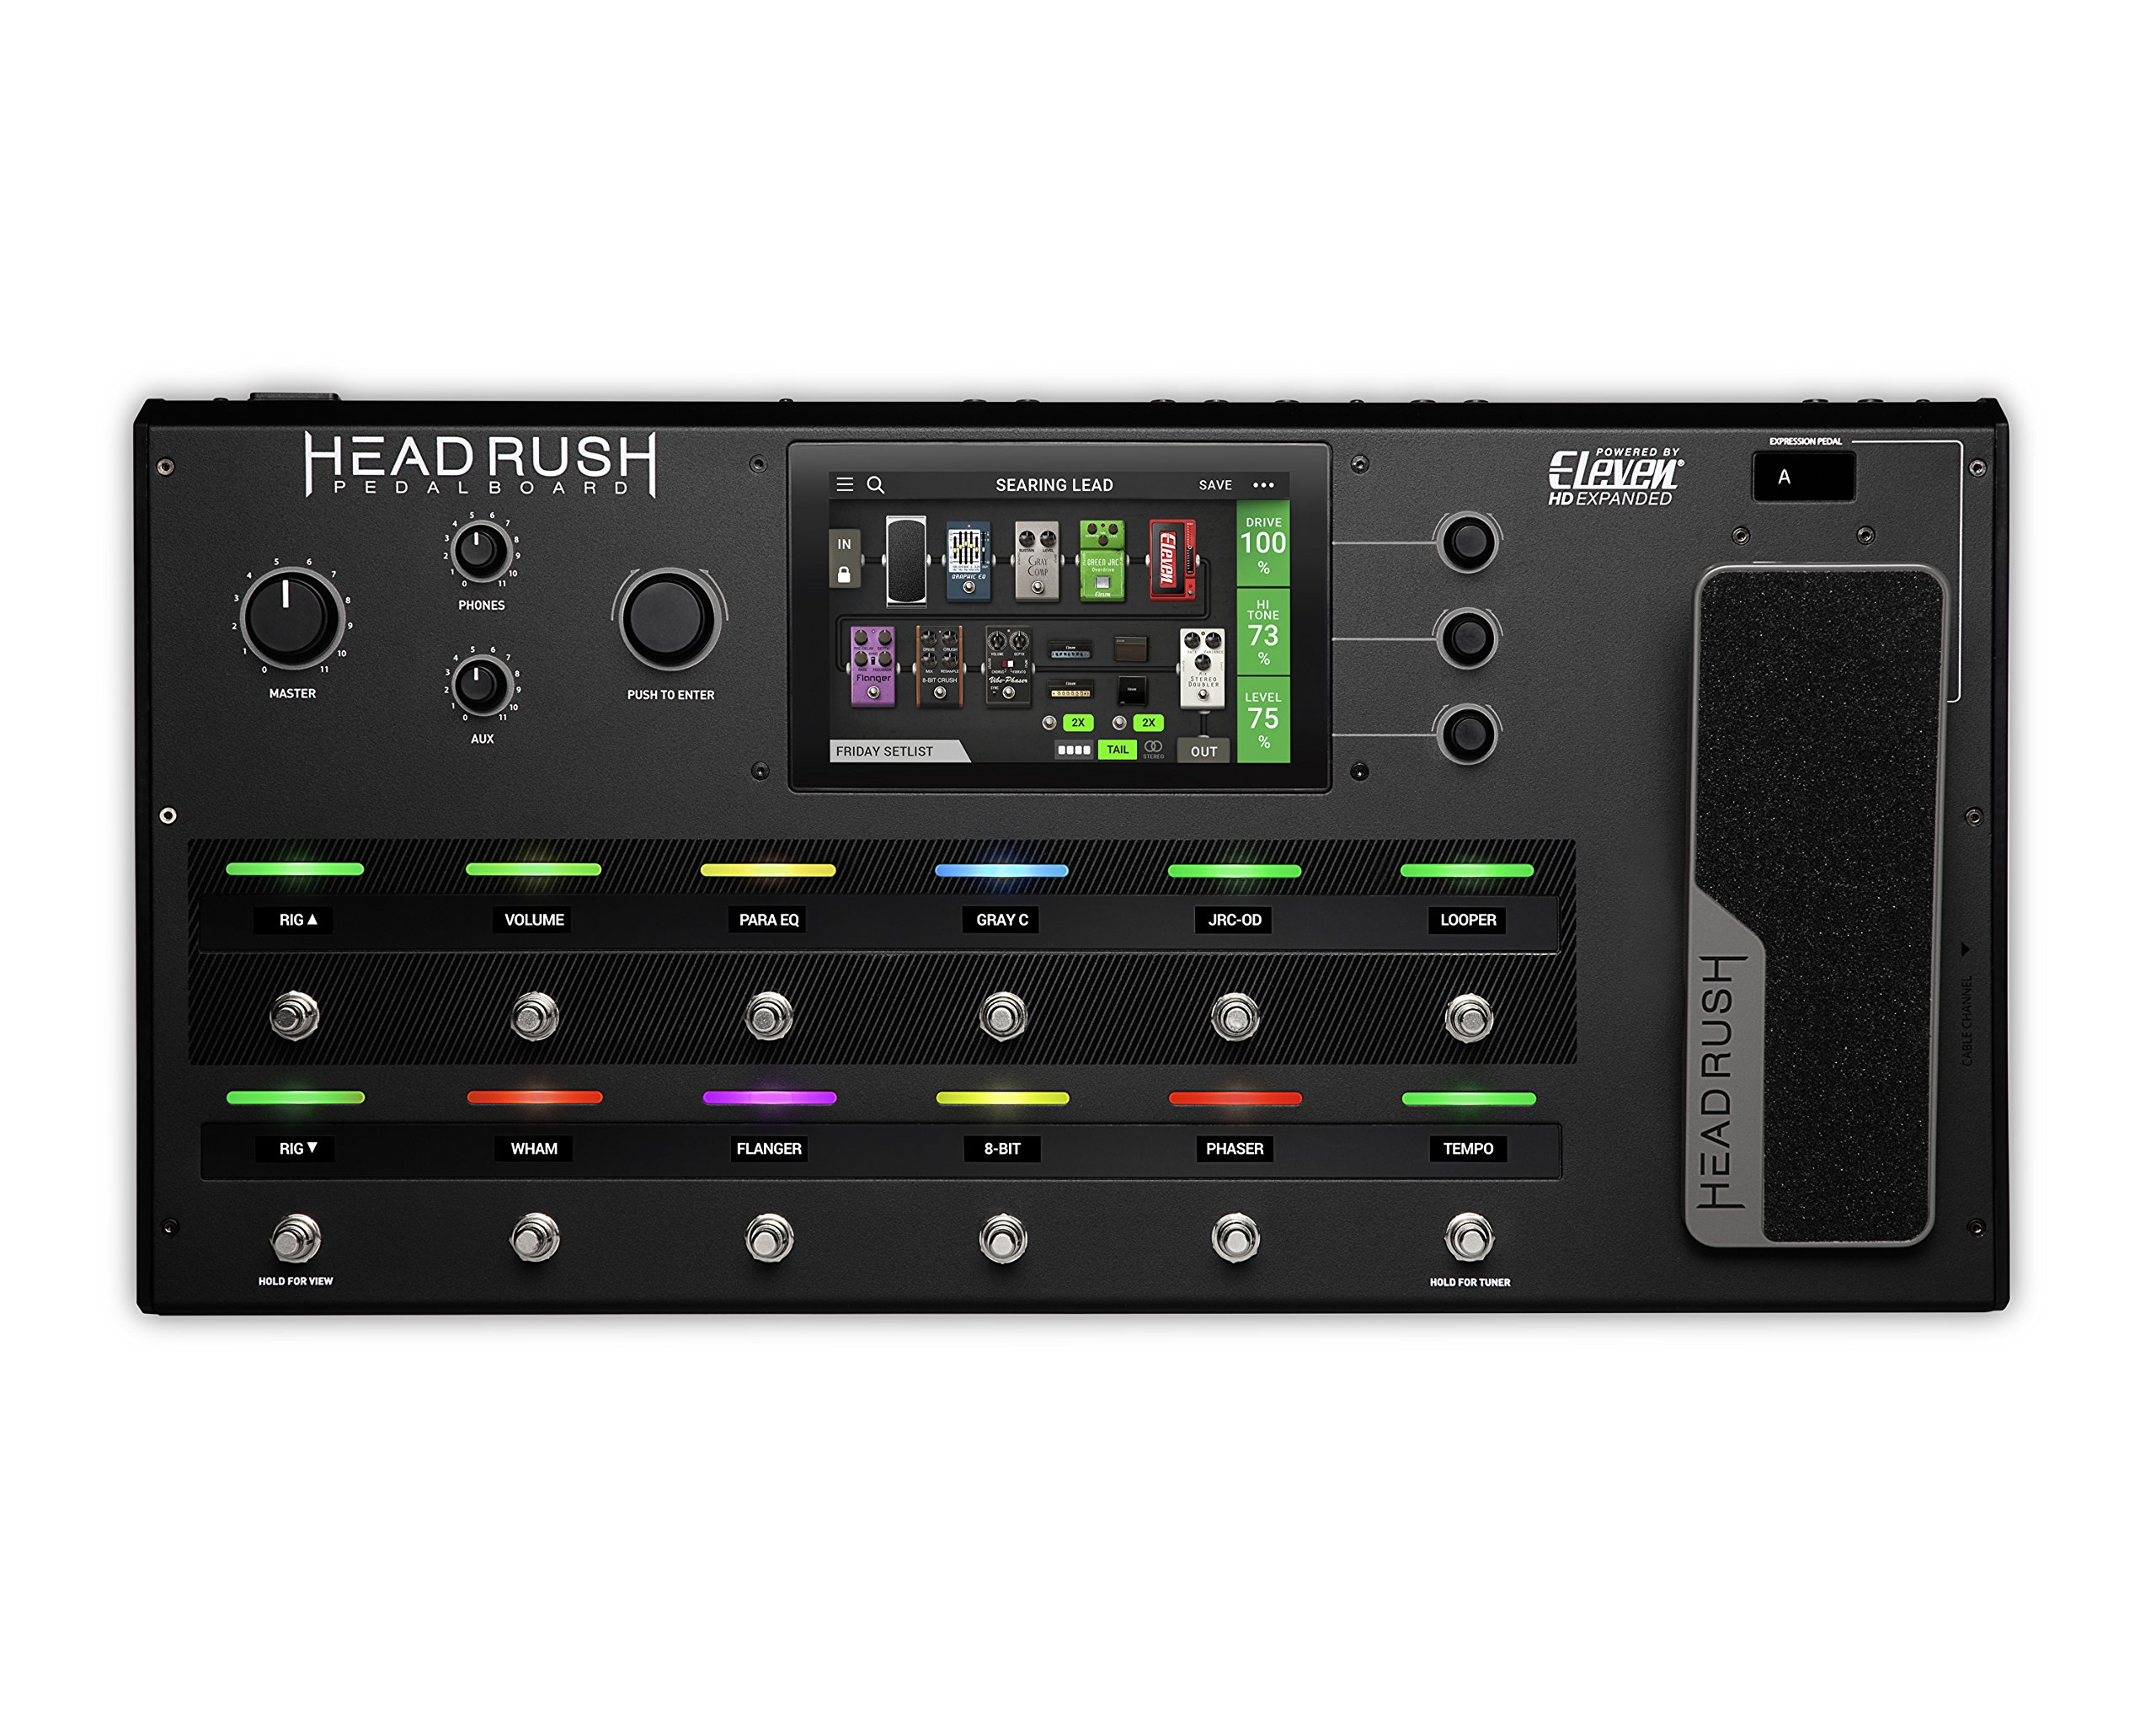 HeadRush Pedalboard | Guitar Amp and FX Modeling Processor by Head Rush (Image #2)